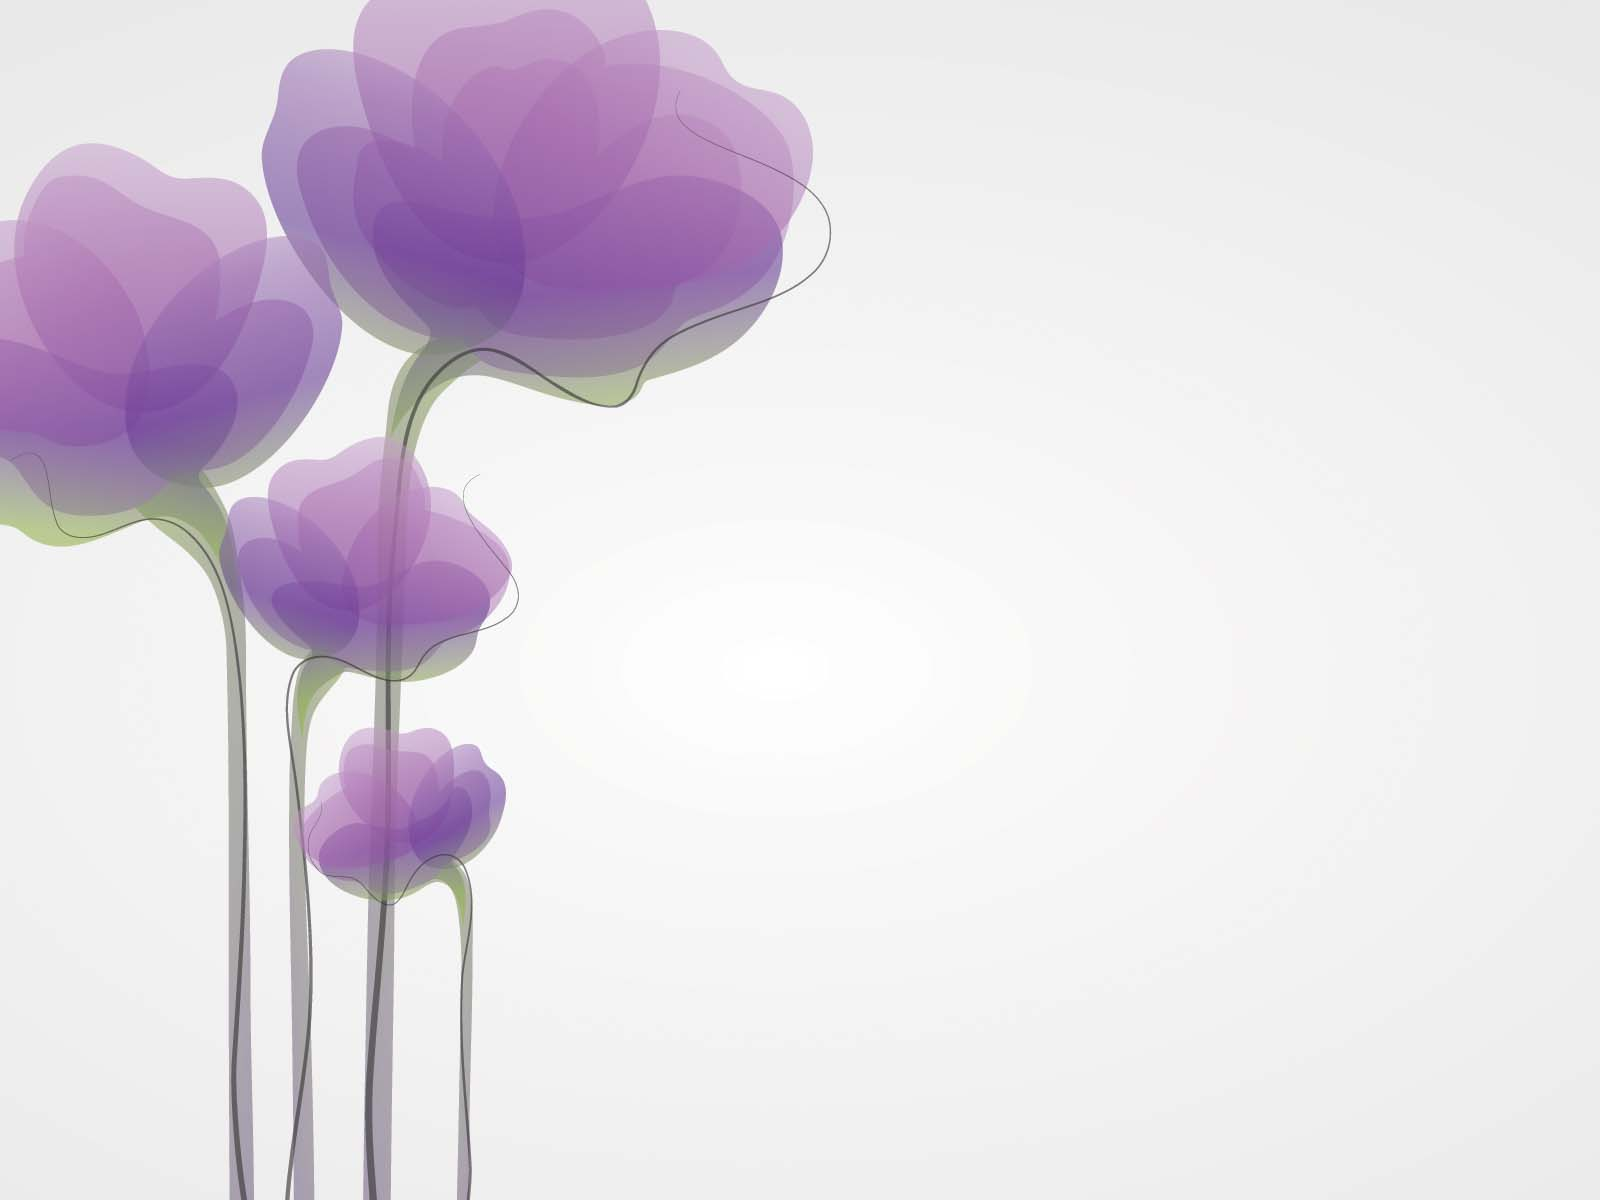 Cute Purple Flower Powerpoint Templates   Flowers  Fuchsia   Magenta     Cute Purple Flower Powerpoint Templates